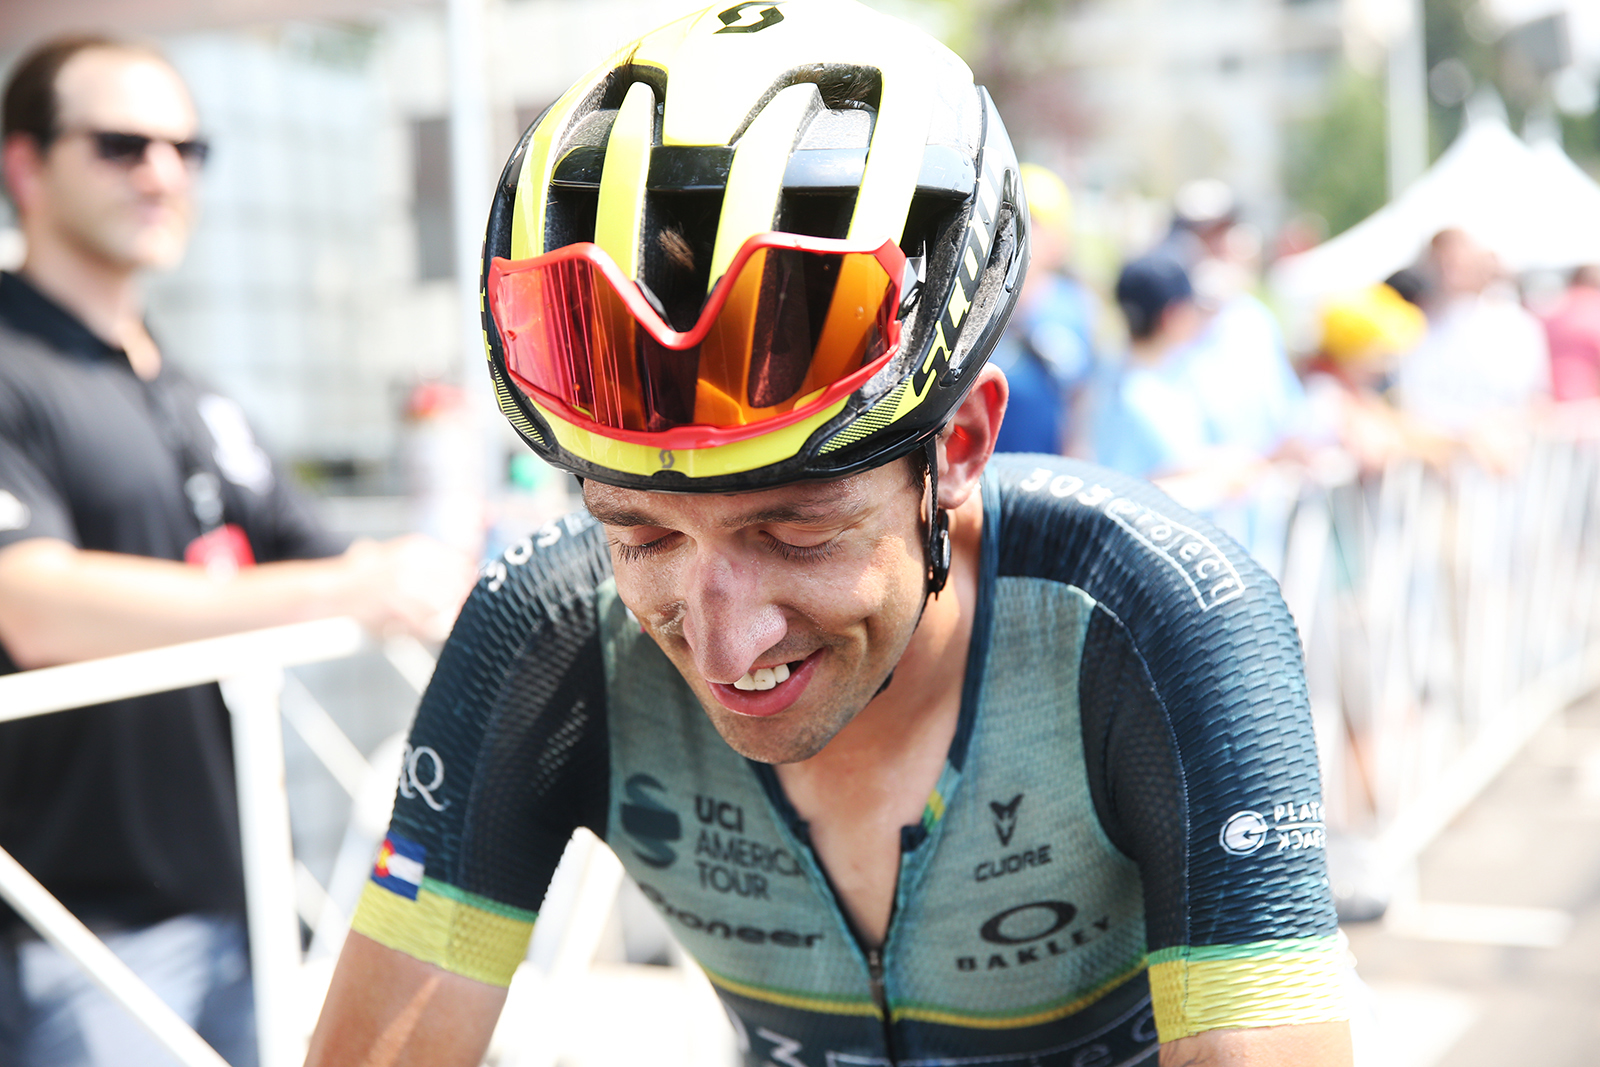 303 Project. 2018 Tour of Utah Stage 4, August 8, 2018, Salt Lake City, Utah. Photo by Cathy Fegan-Kim, cottonsoxphotography.net